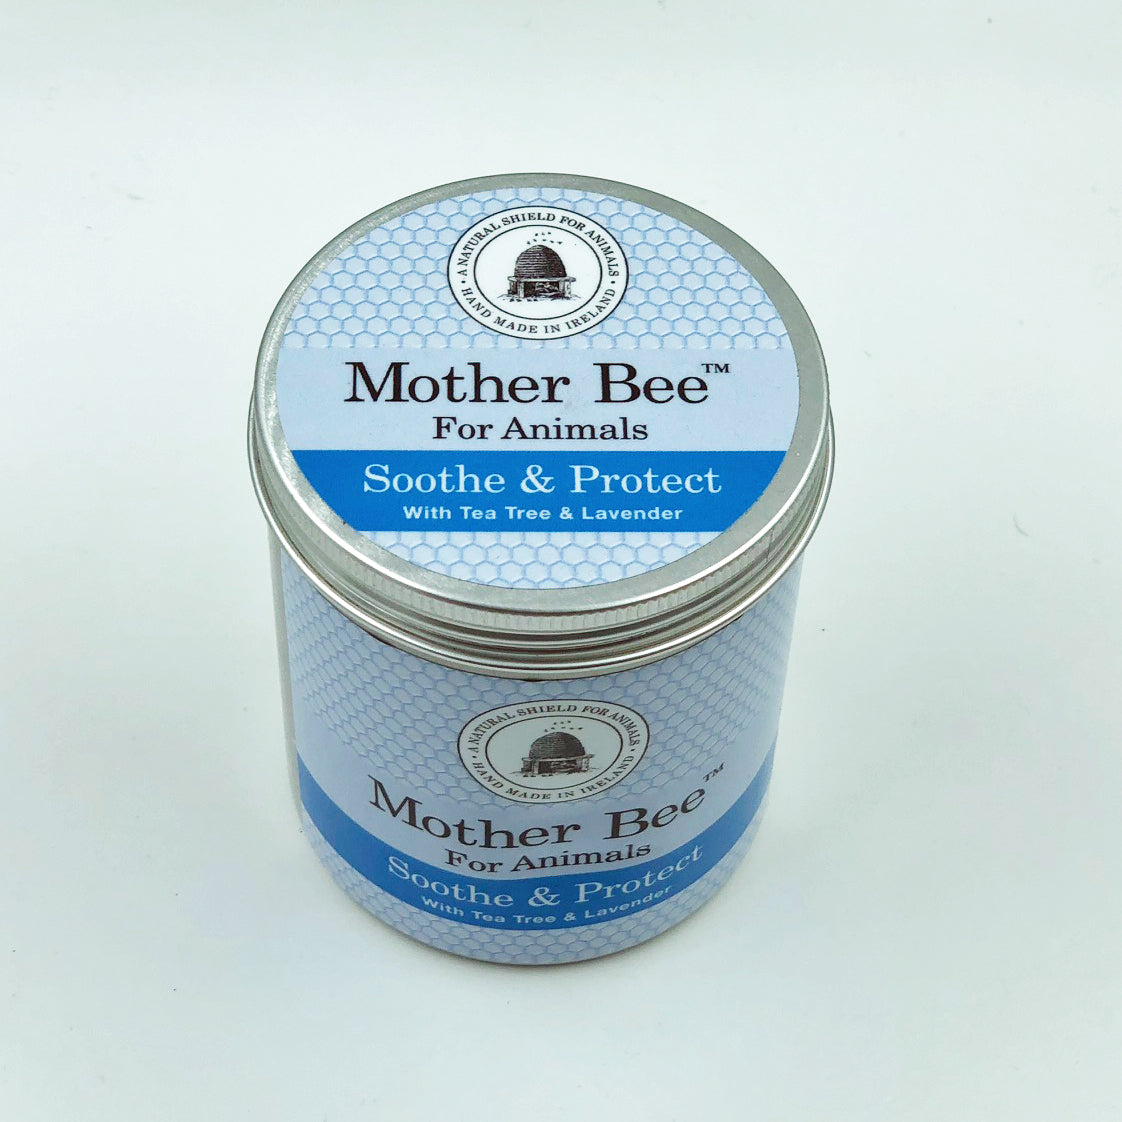 Mother Bee: Soothe & Protect - Honest Riders